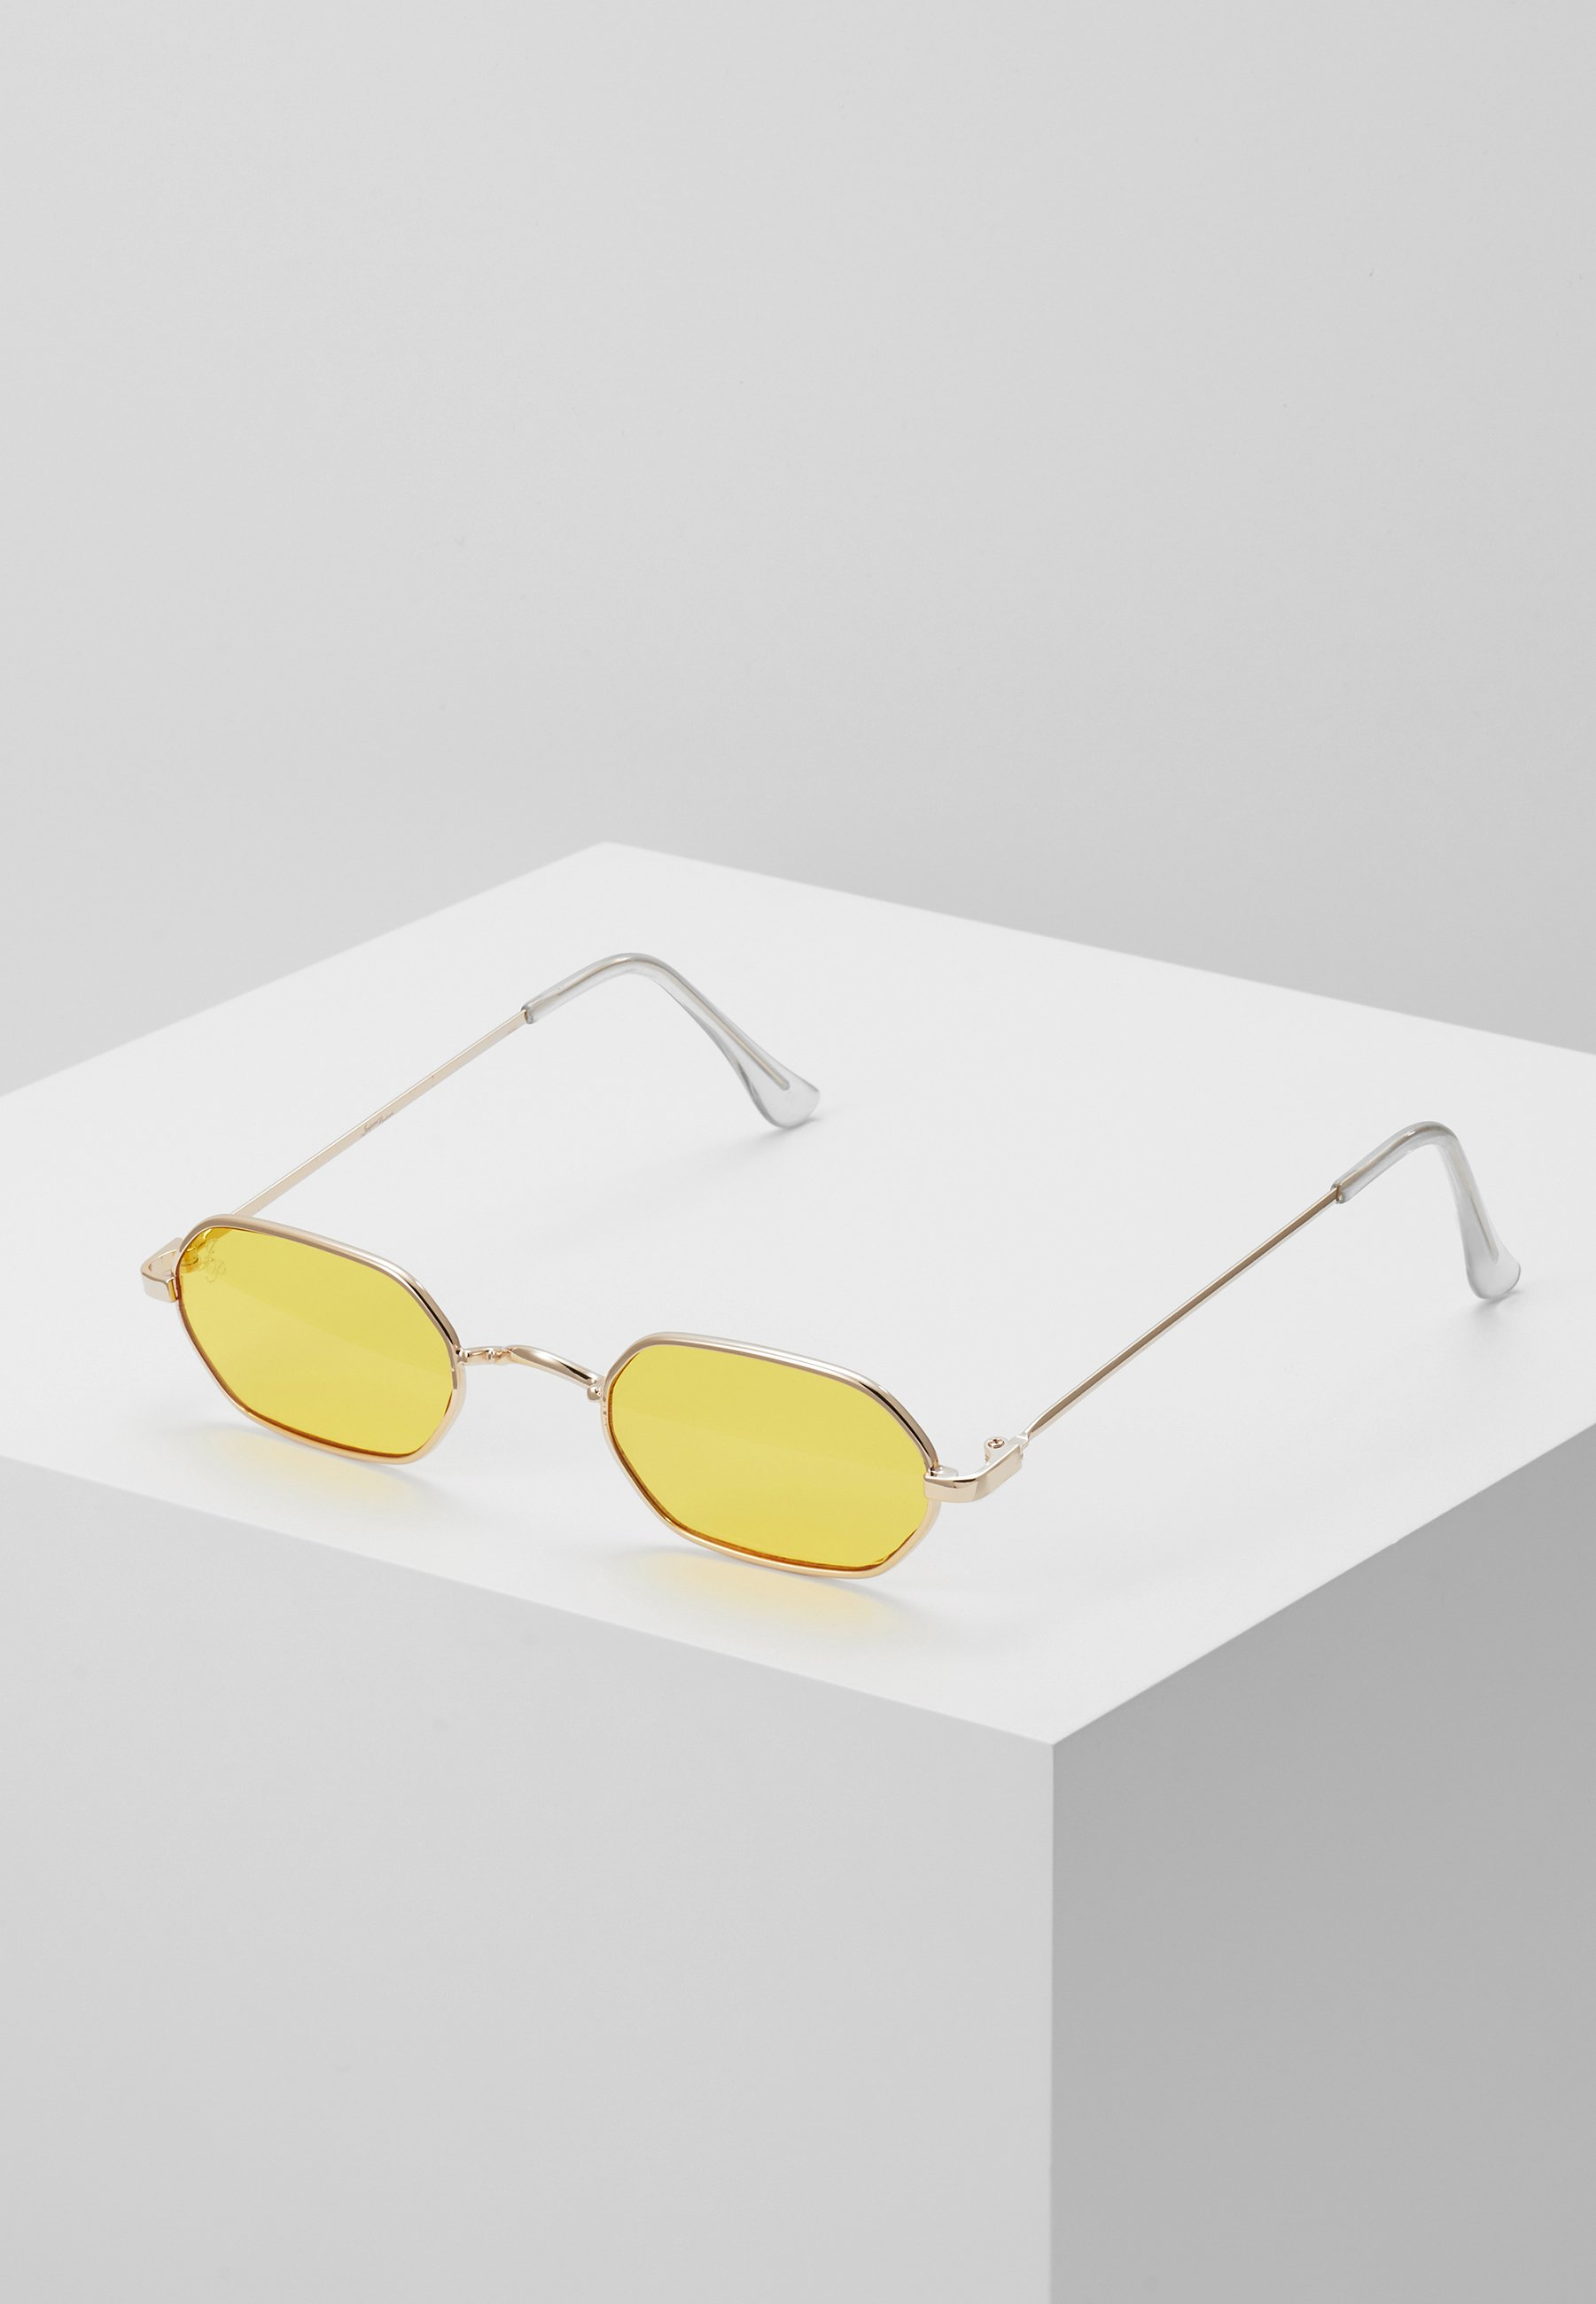 Jeepers Peepers - Sun glasses - gold/yellow lens